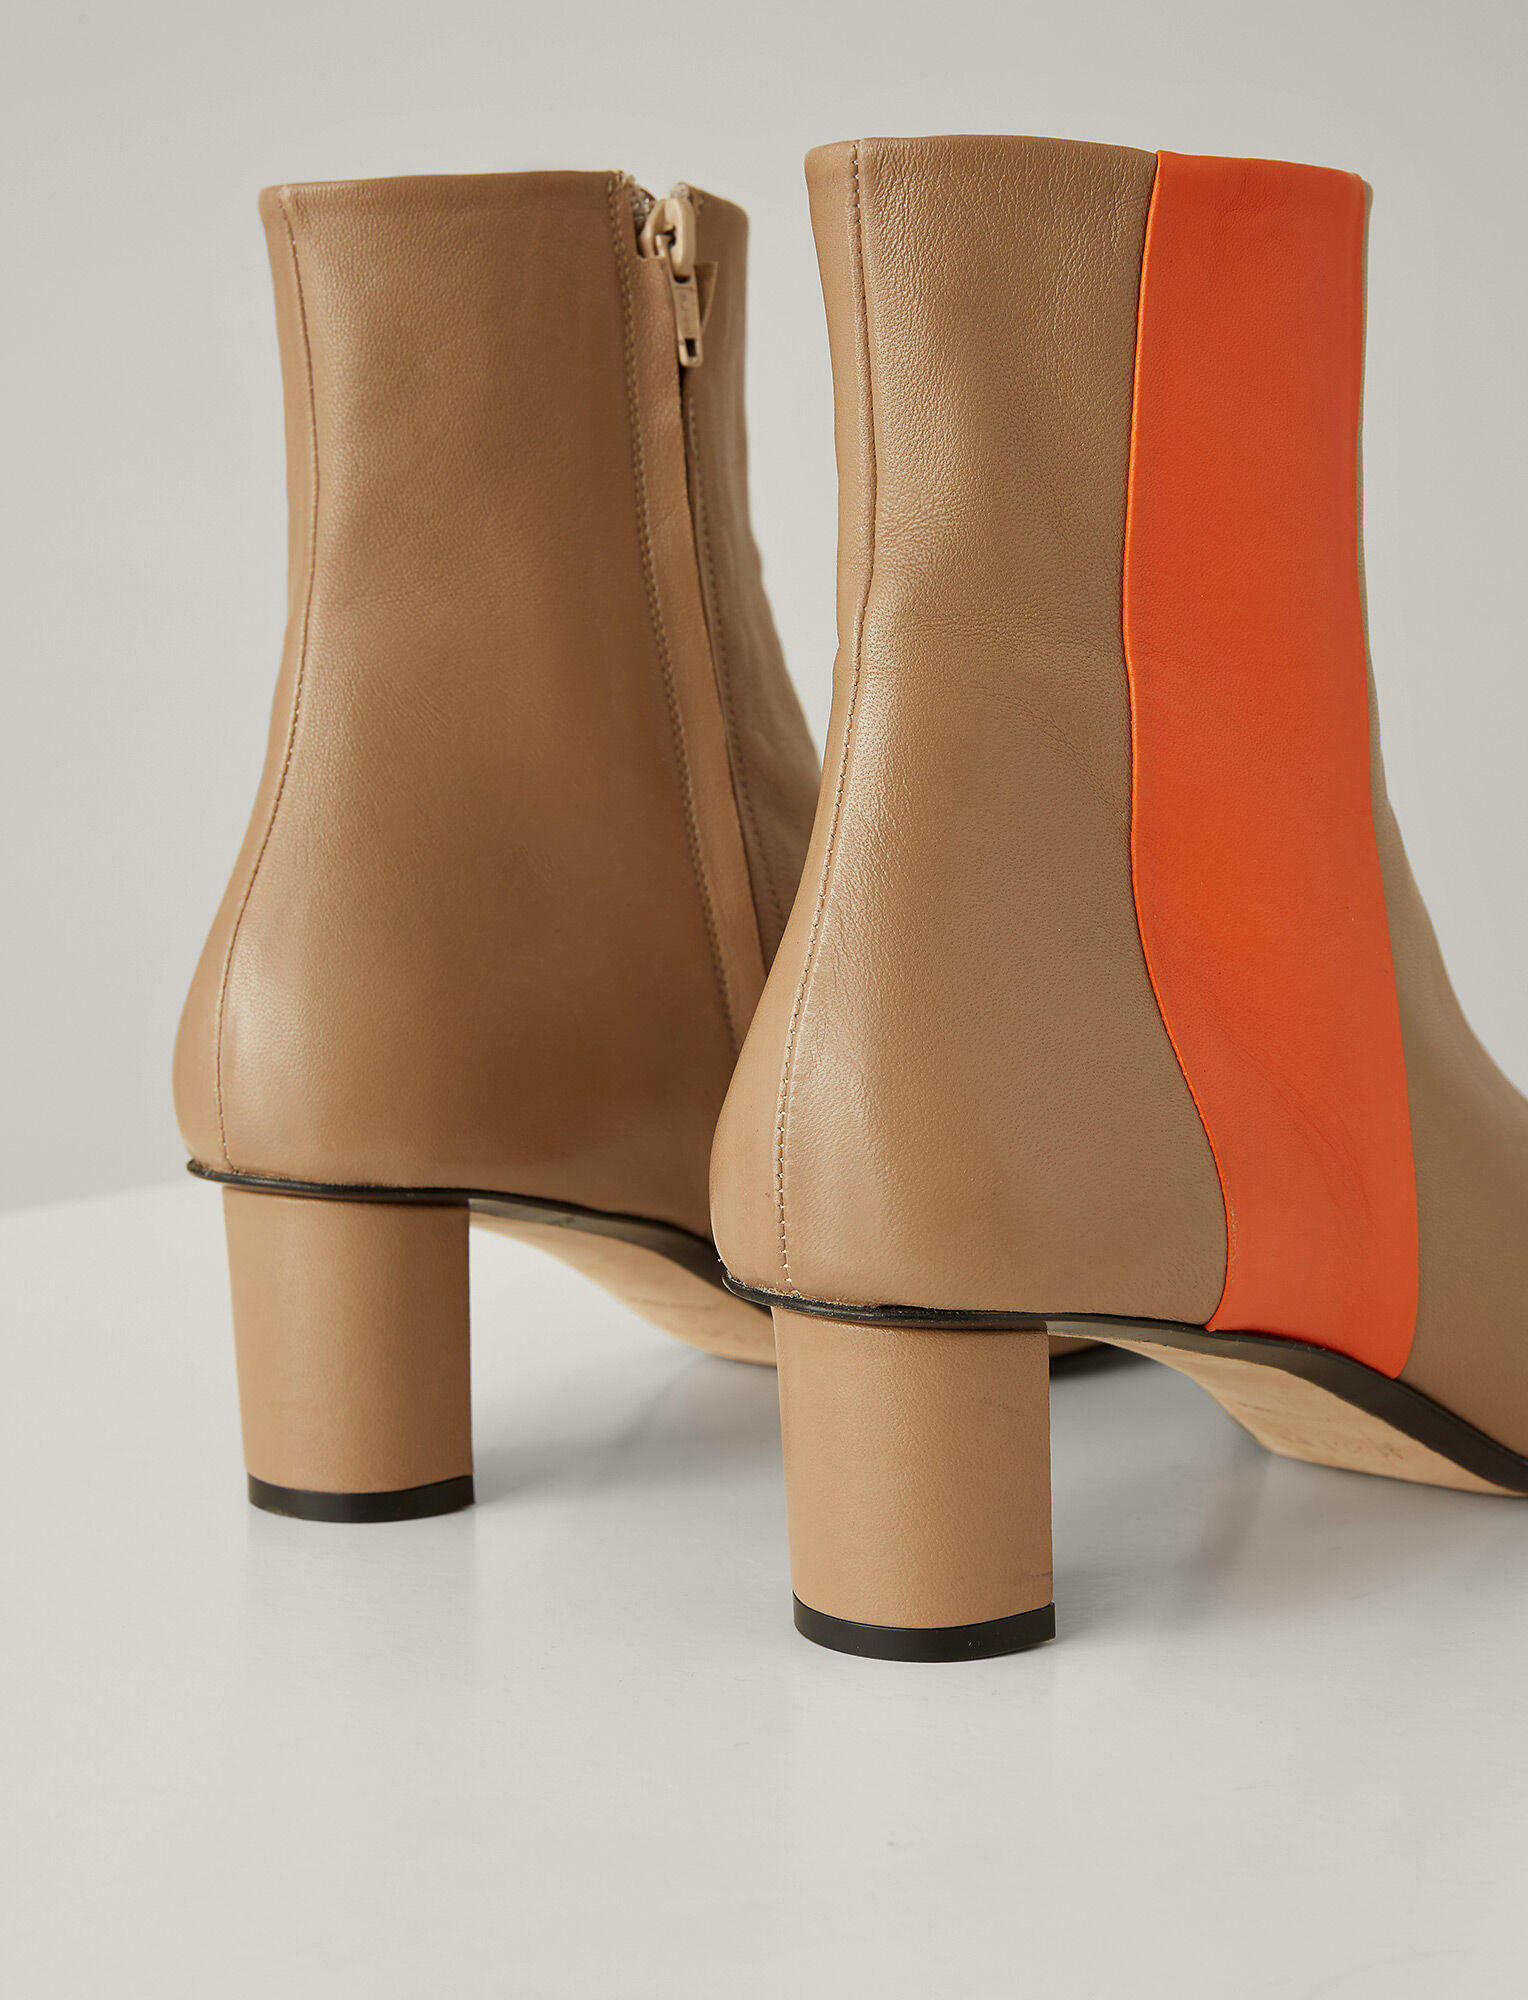 Joseph, Bottines Avenue en Super cuir, in TAN